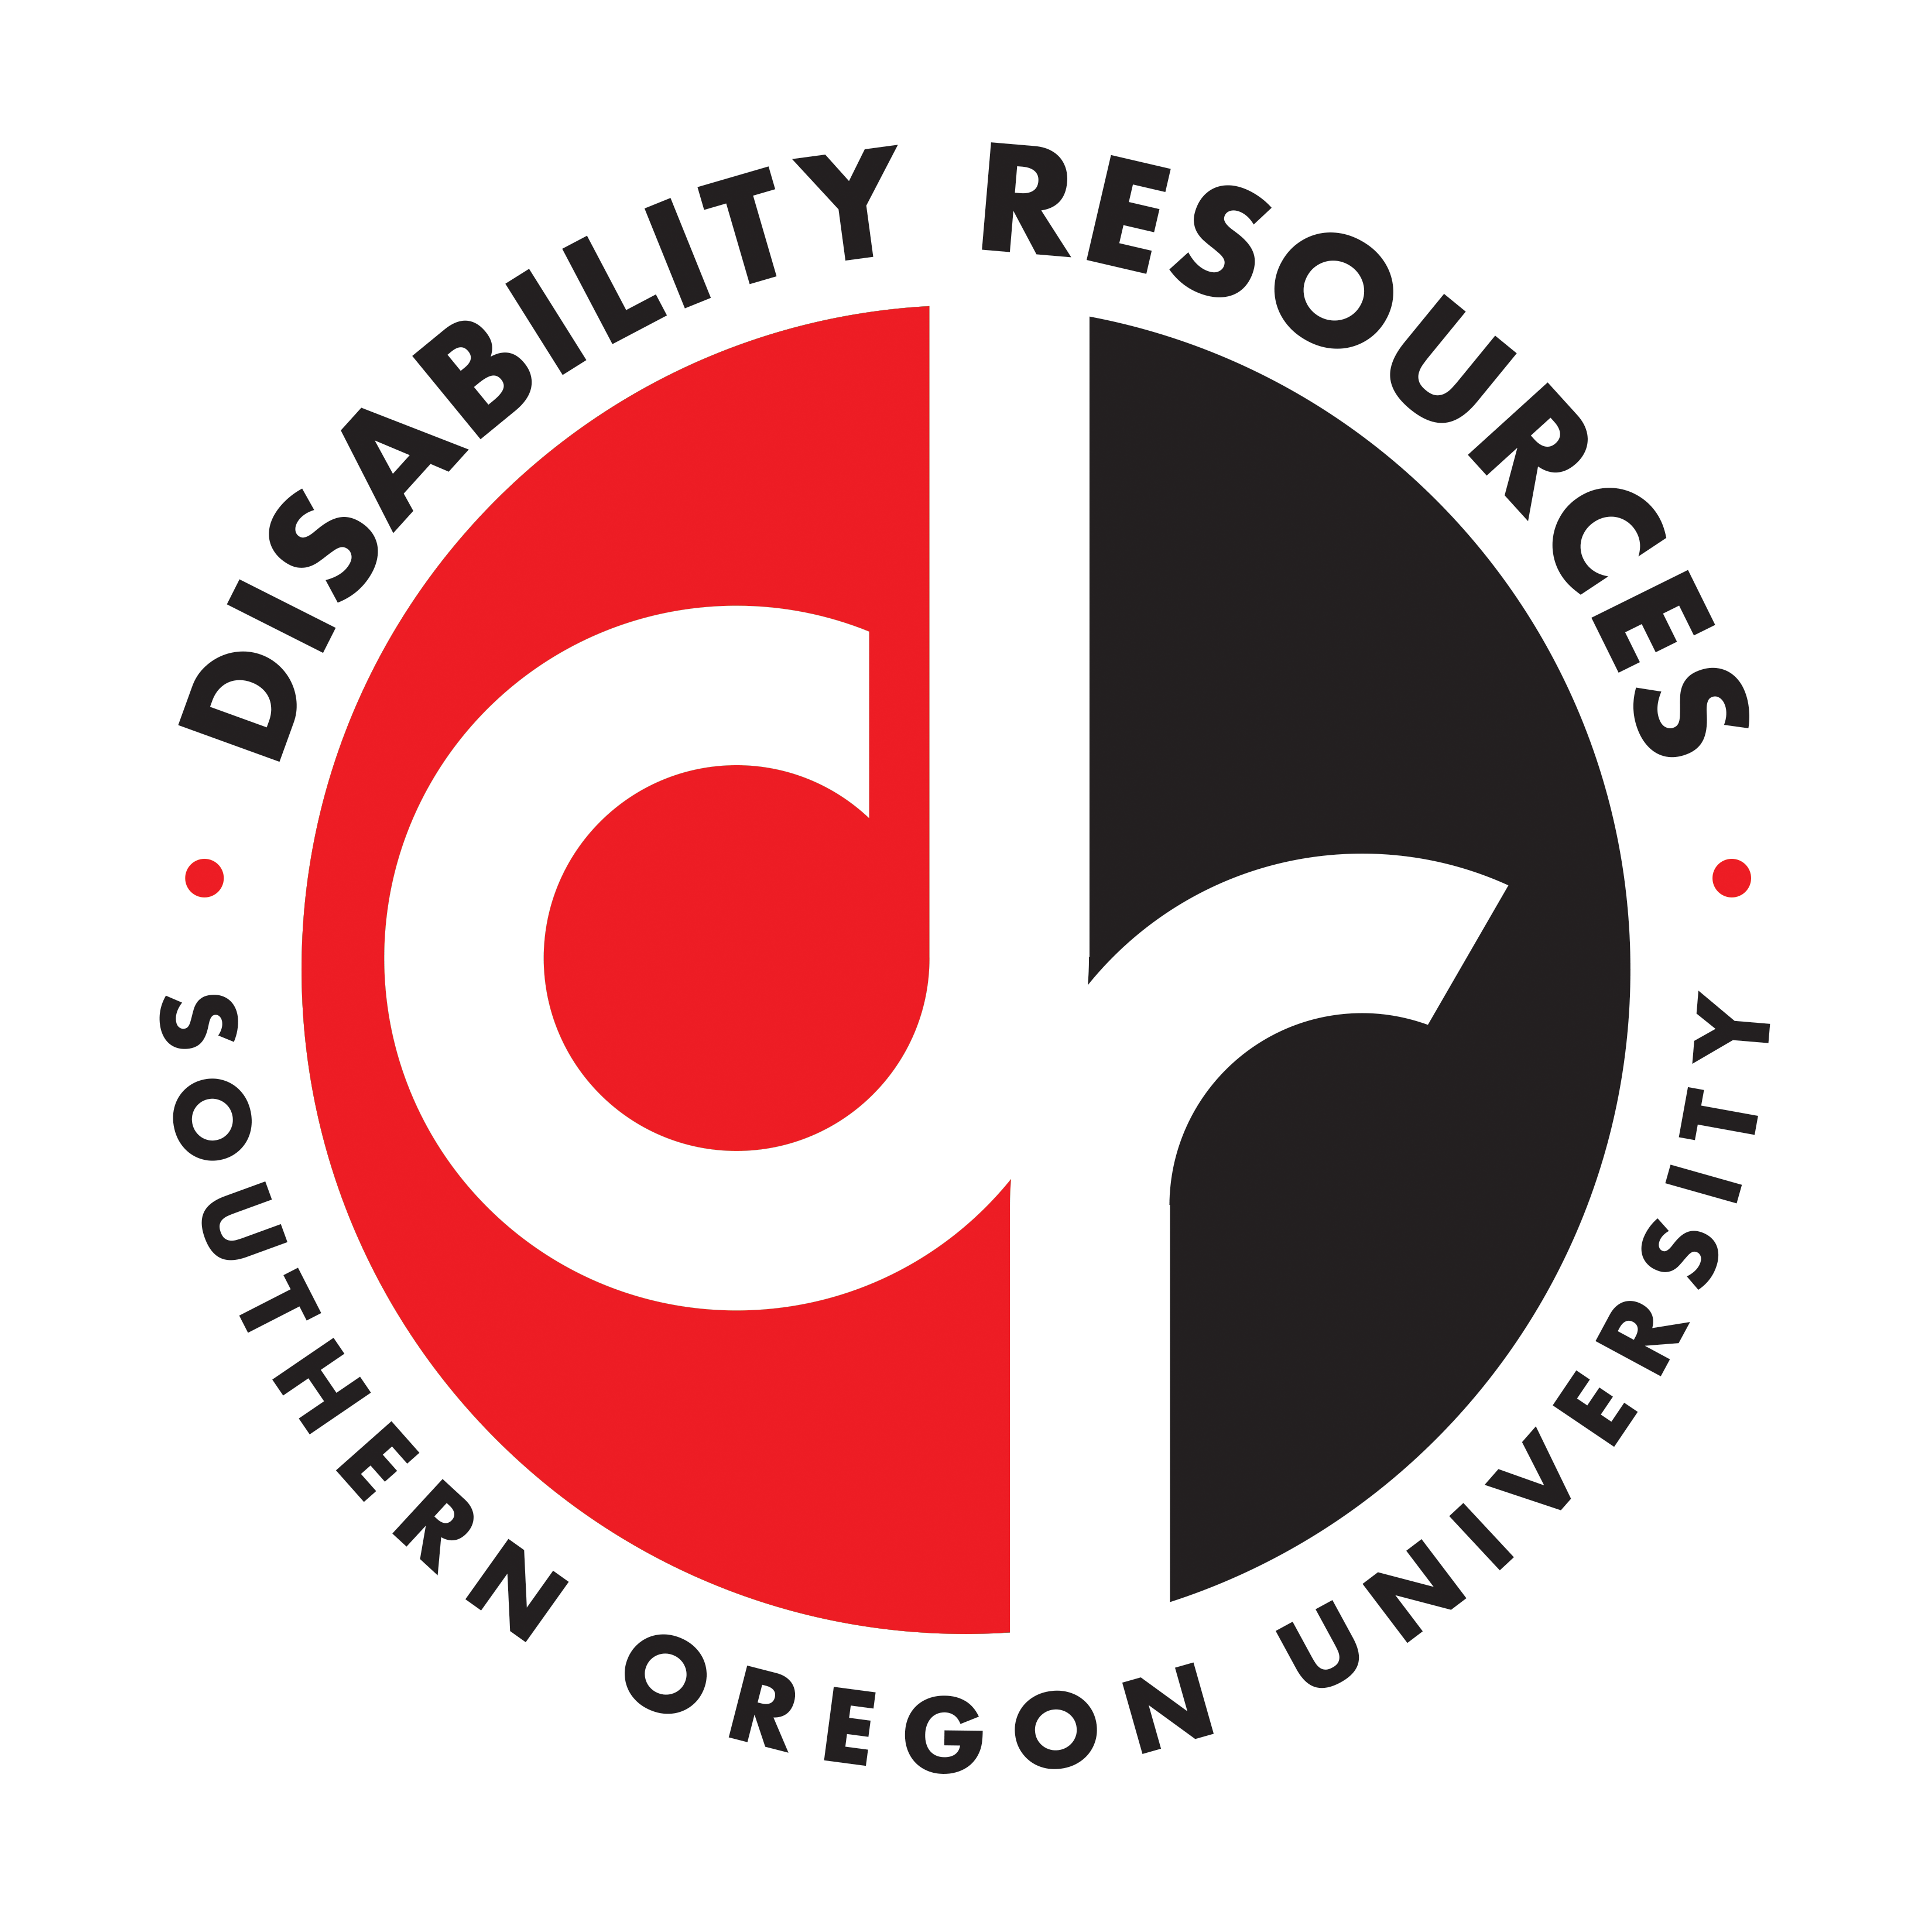 Disability Resources logo